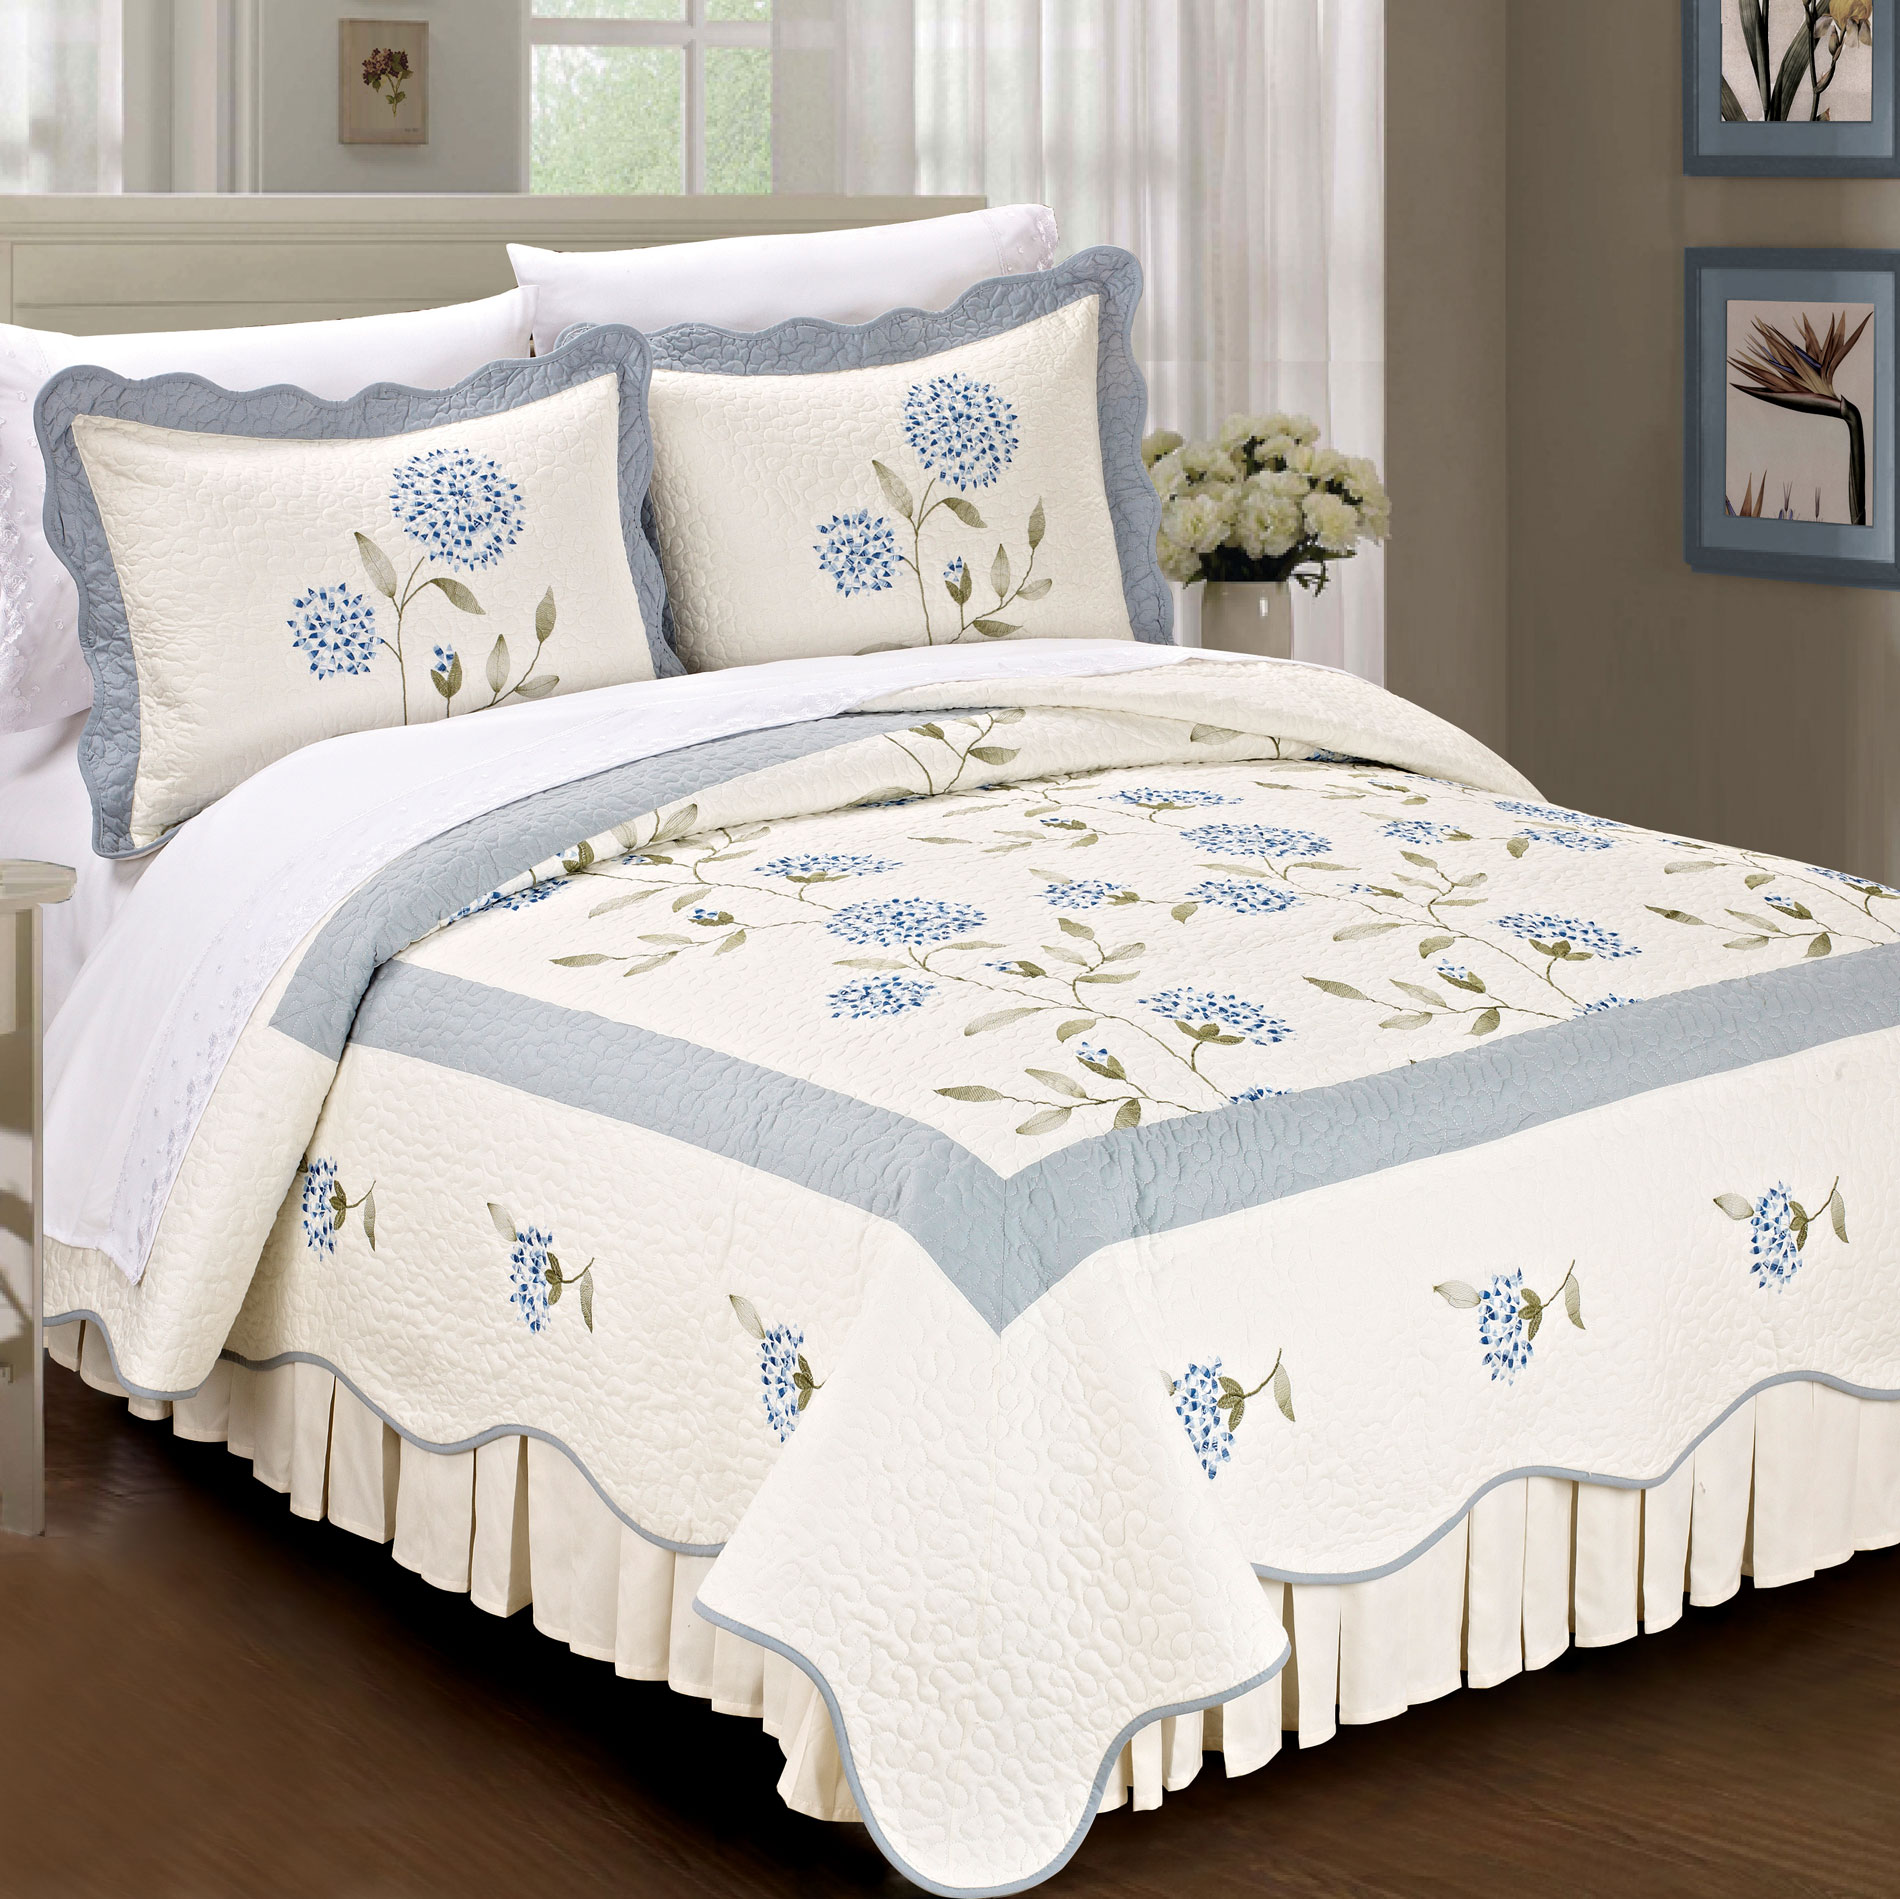 Serenta Sun Flowers Classic 3 Piece 100% Cotton Quilted Coverlet Bed Spread Set